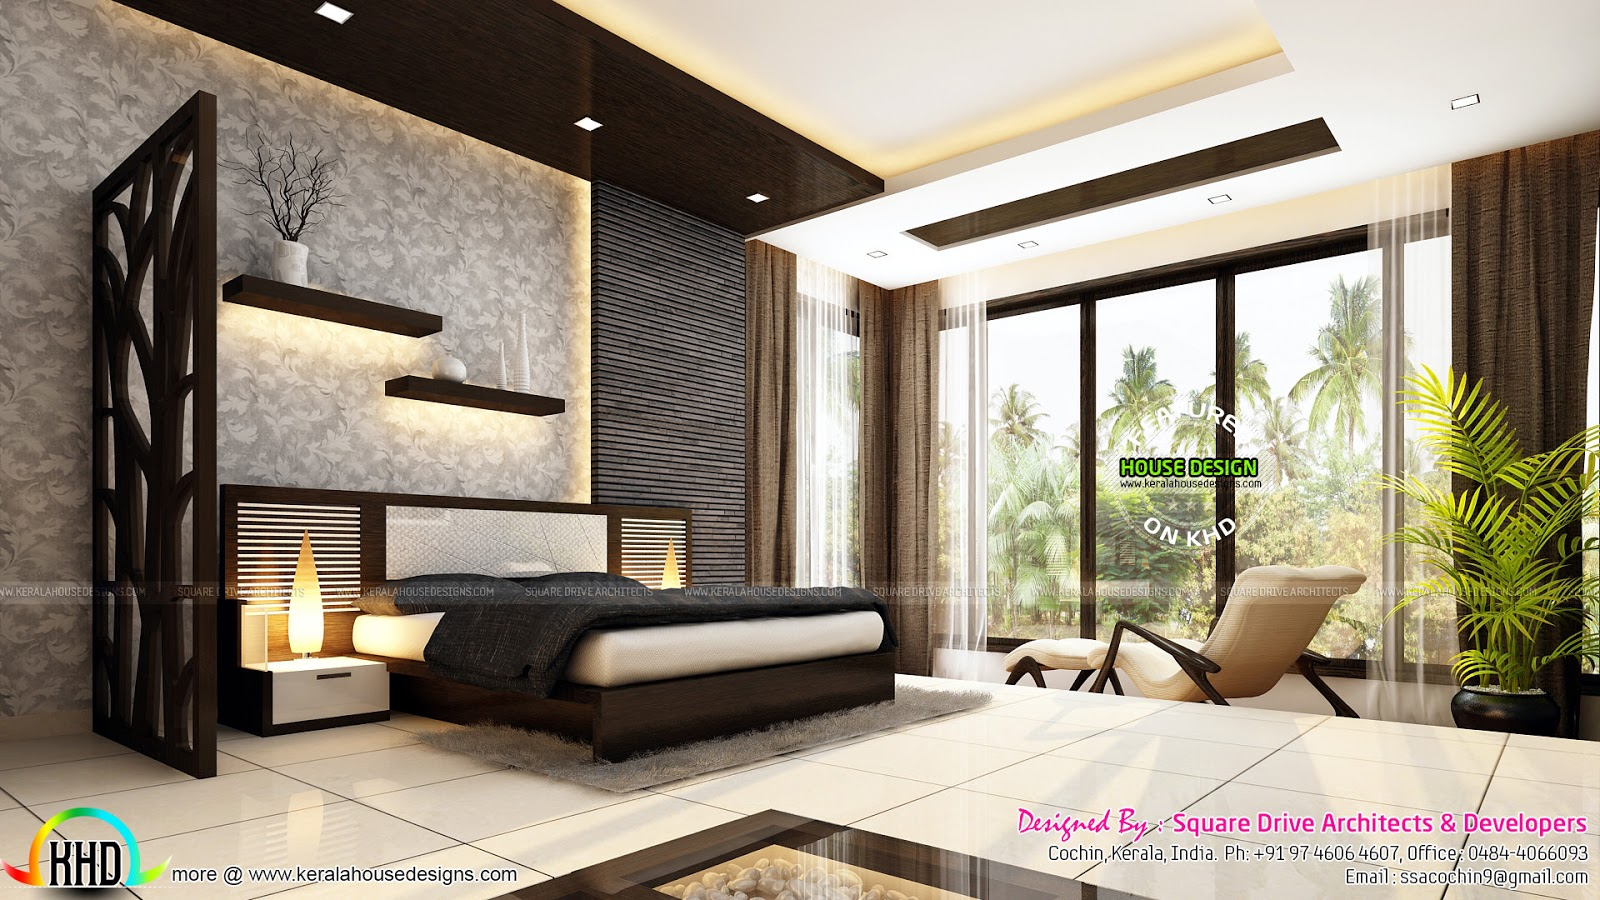 Very beautiful modern interior designs kerala home for Kerala home interior designs photos